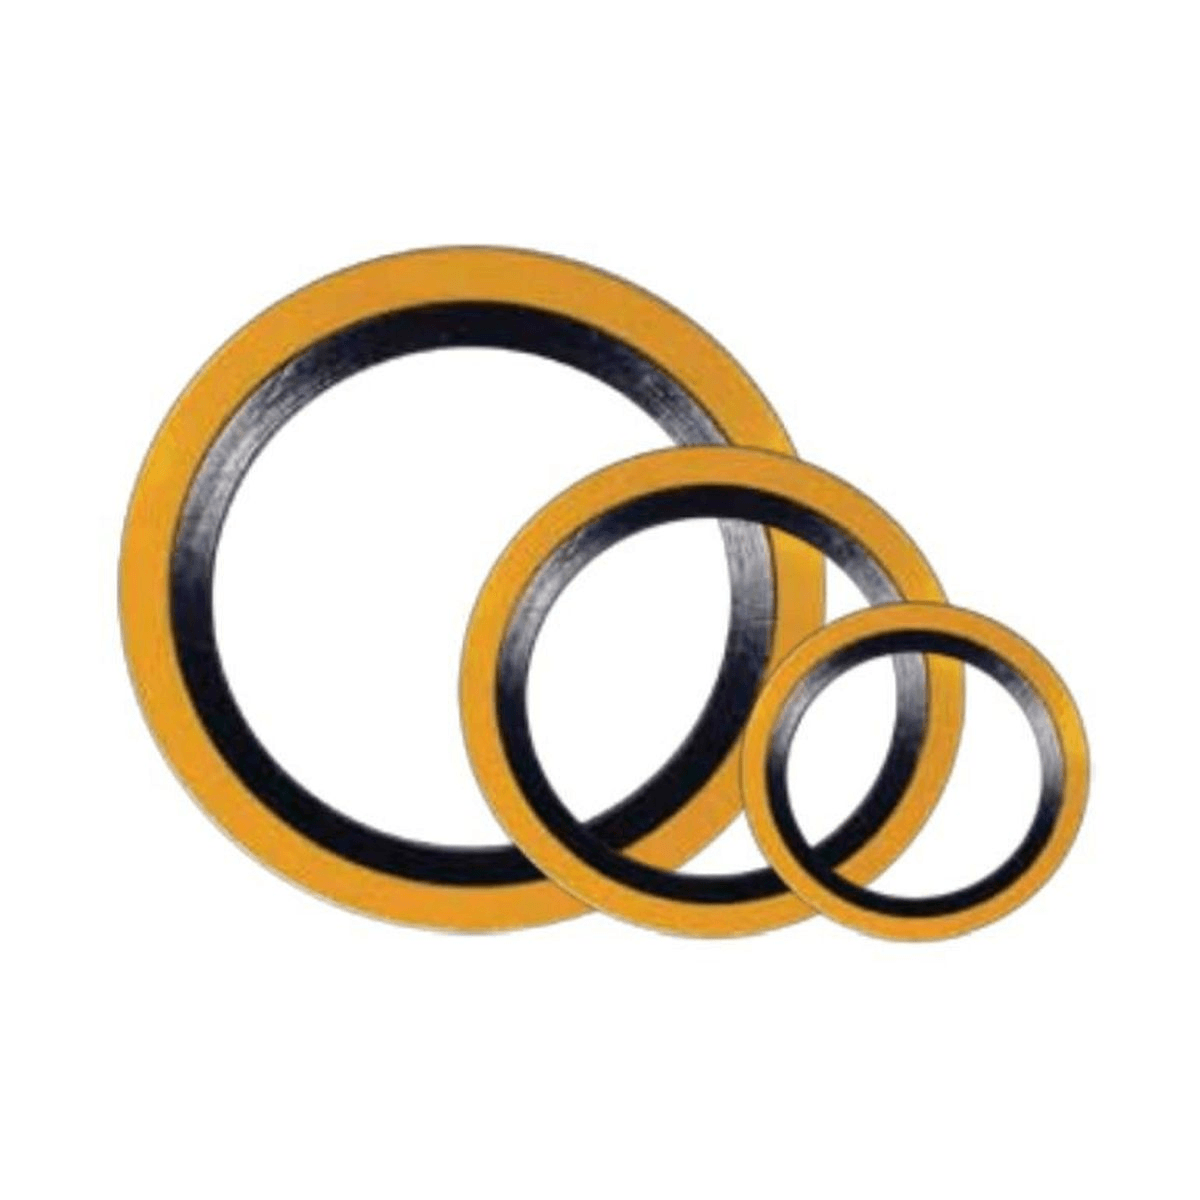 Spiral Wound Gasket-304 Ss-Graphite Filled